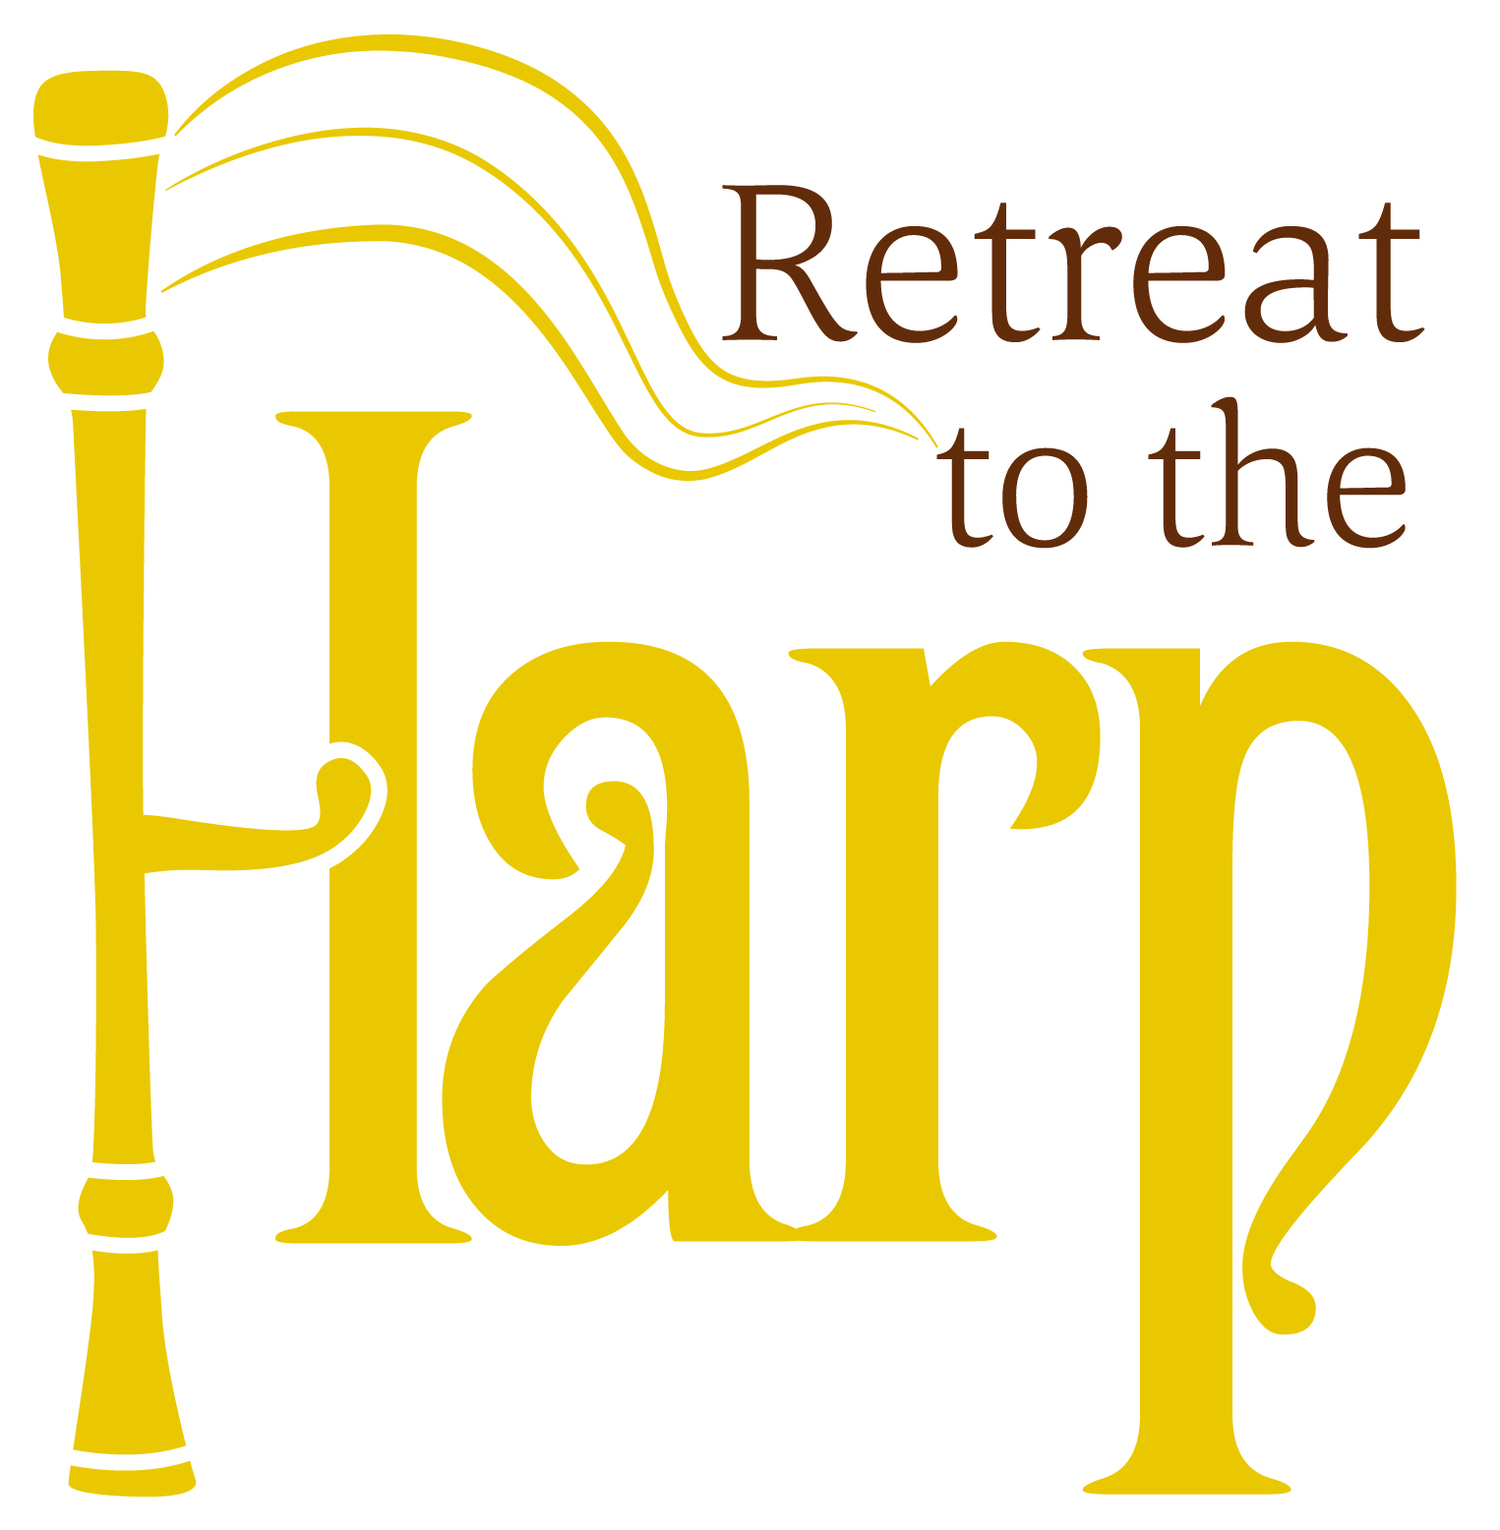 Retreat to the Harp